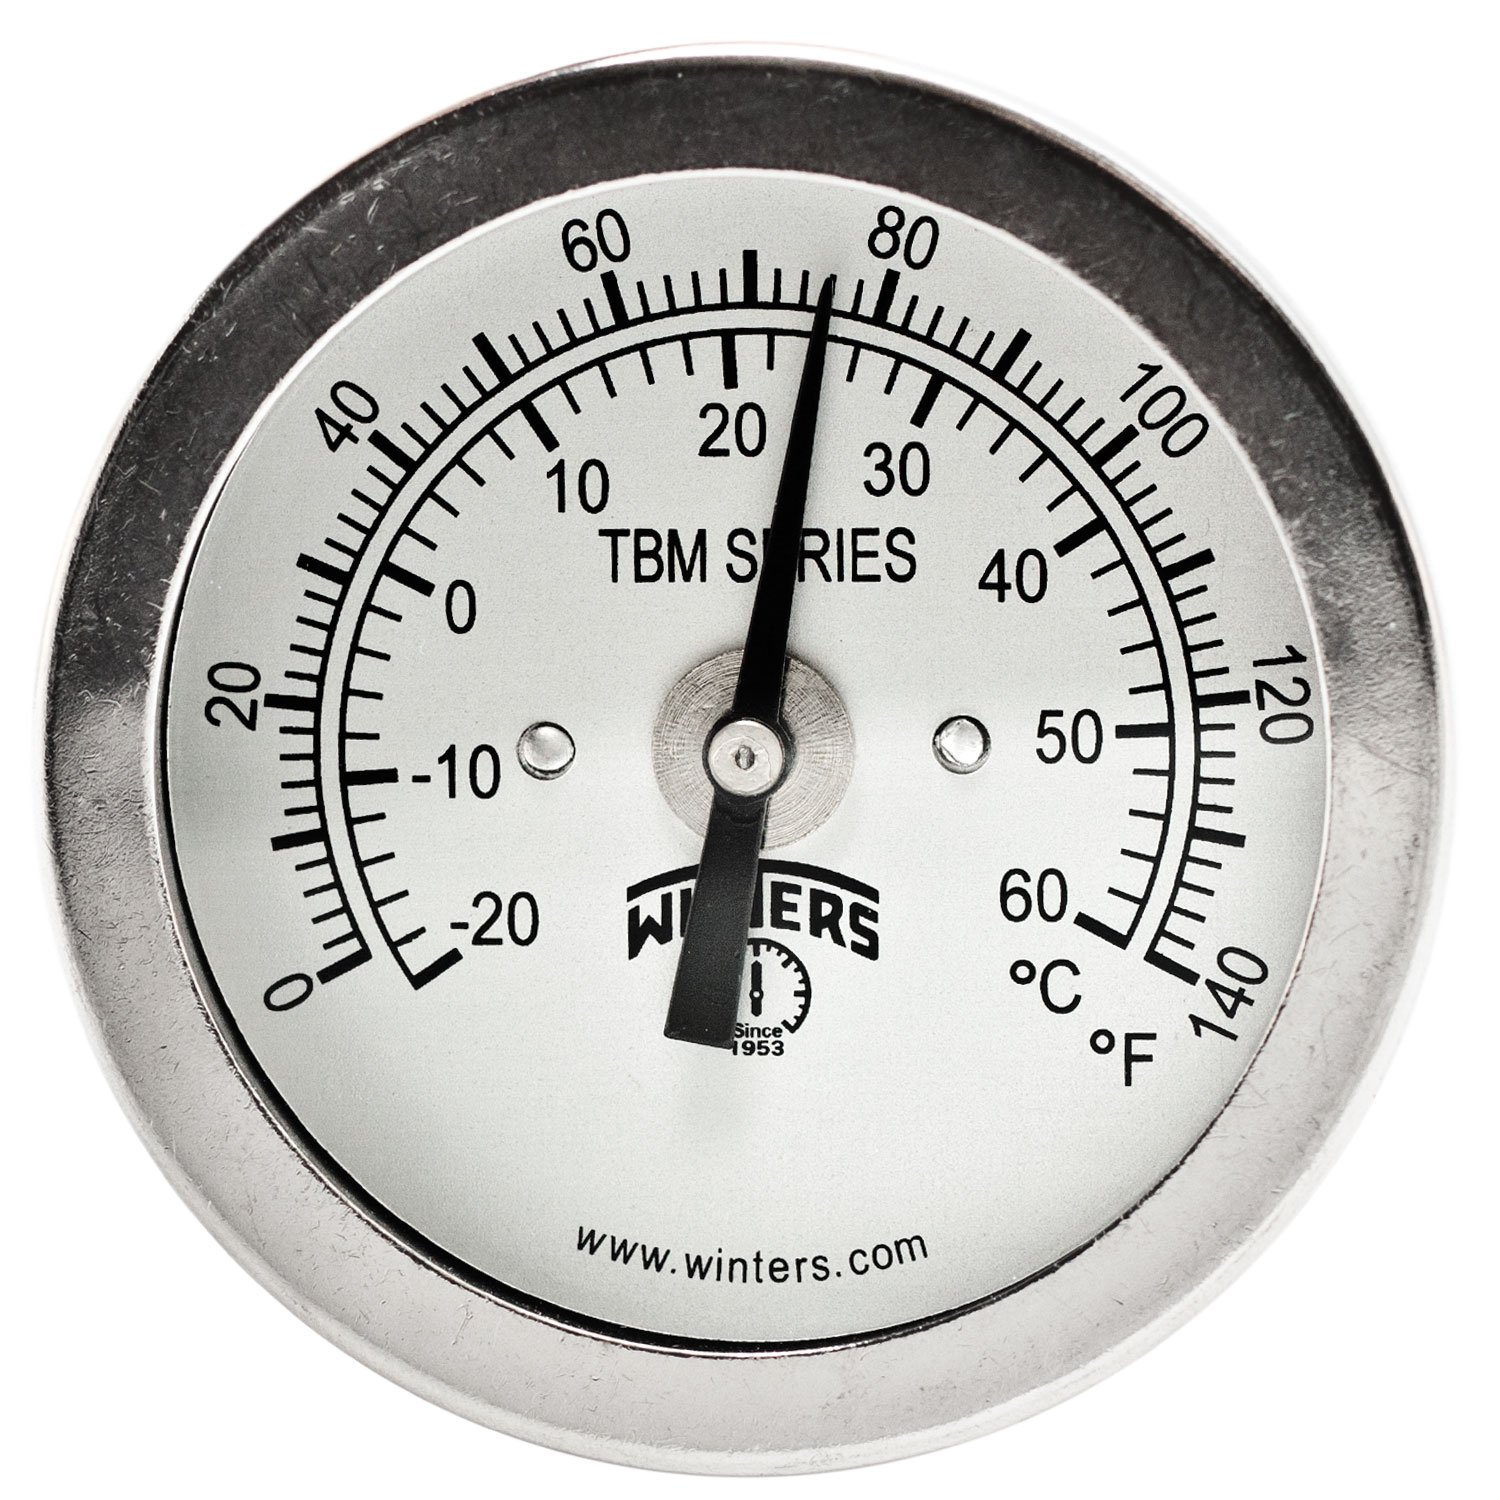 Winters TBM Series Stainless Steel 304 Dual Scale Bi-Metal Thermometer, 2-1/2'' Stem, 1/4'' NPT Fixed Center Back Mount Connection, 2'' Dial, 0-140 F/C Range